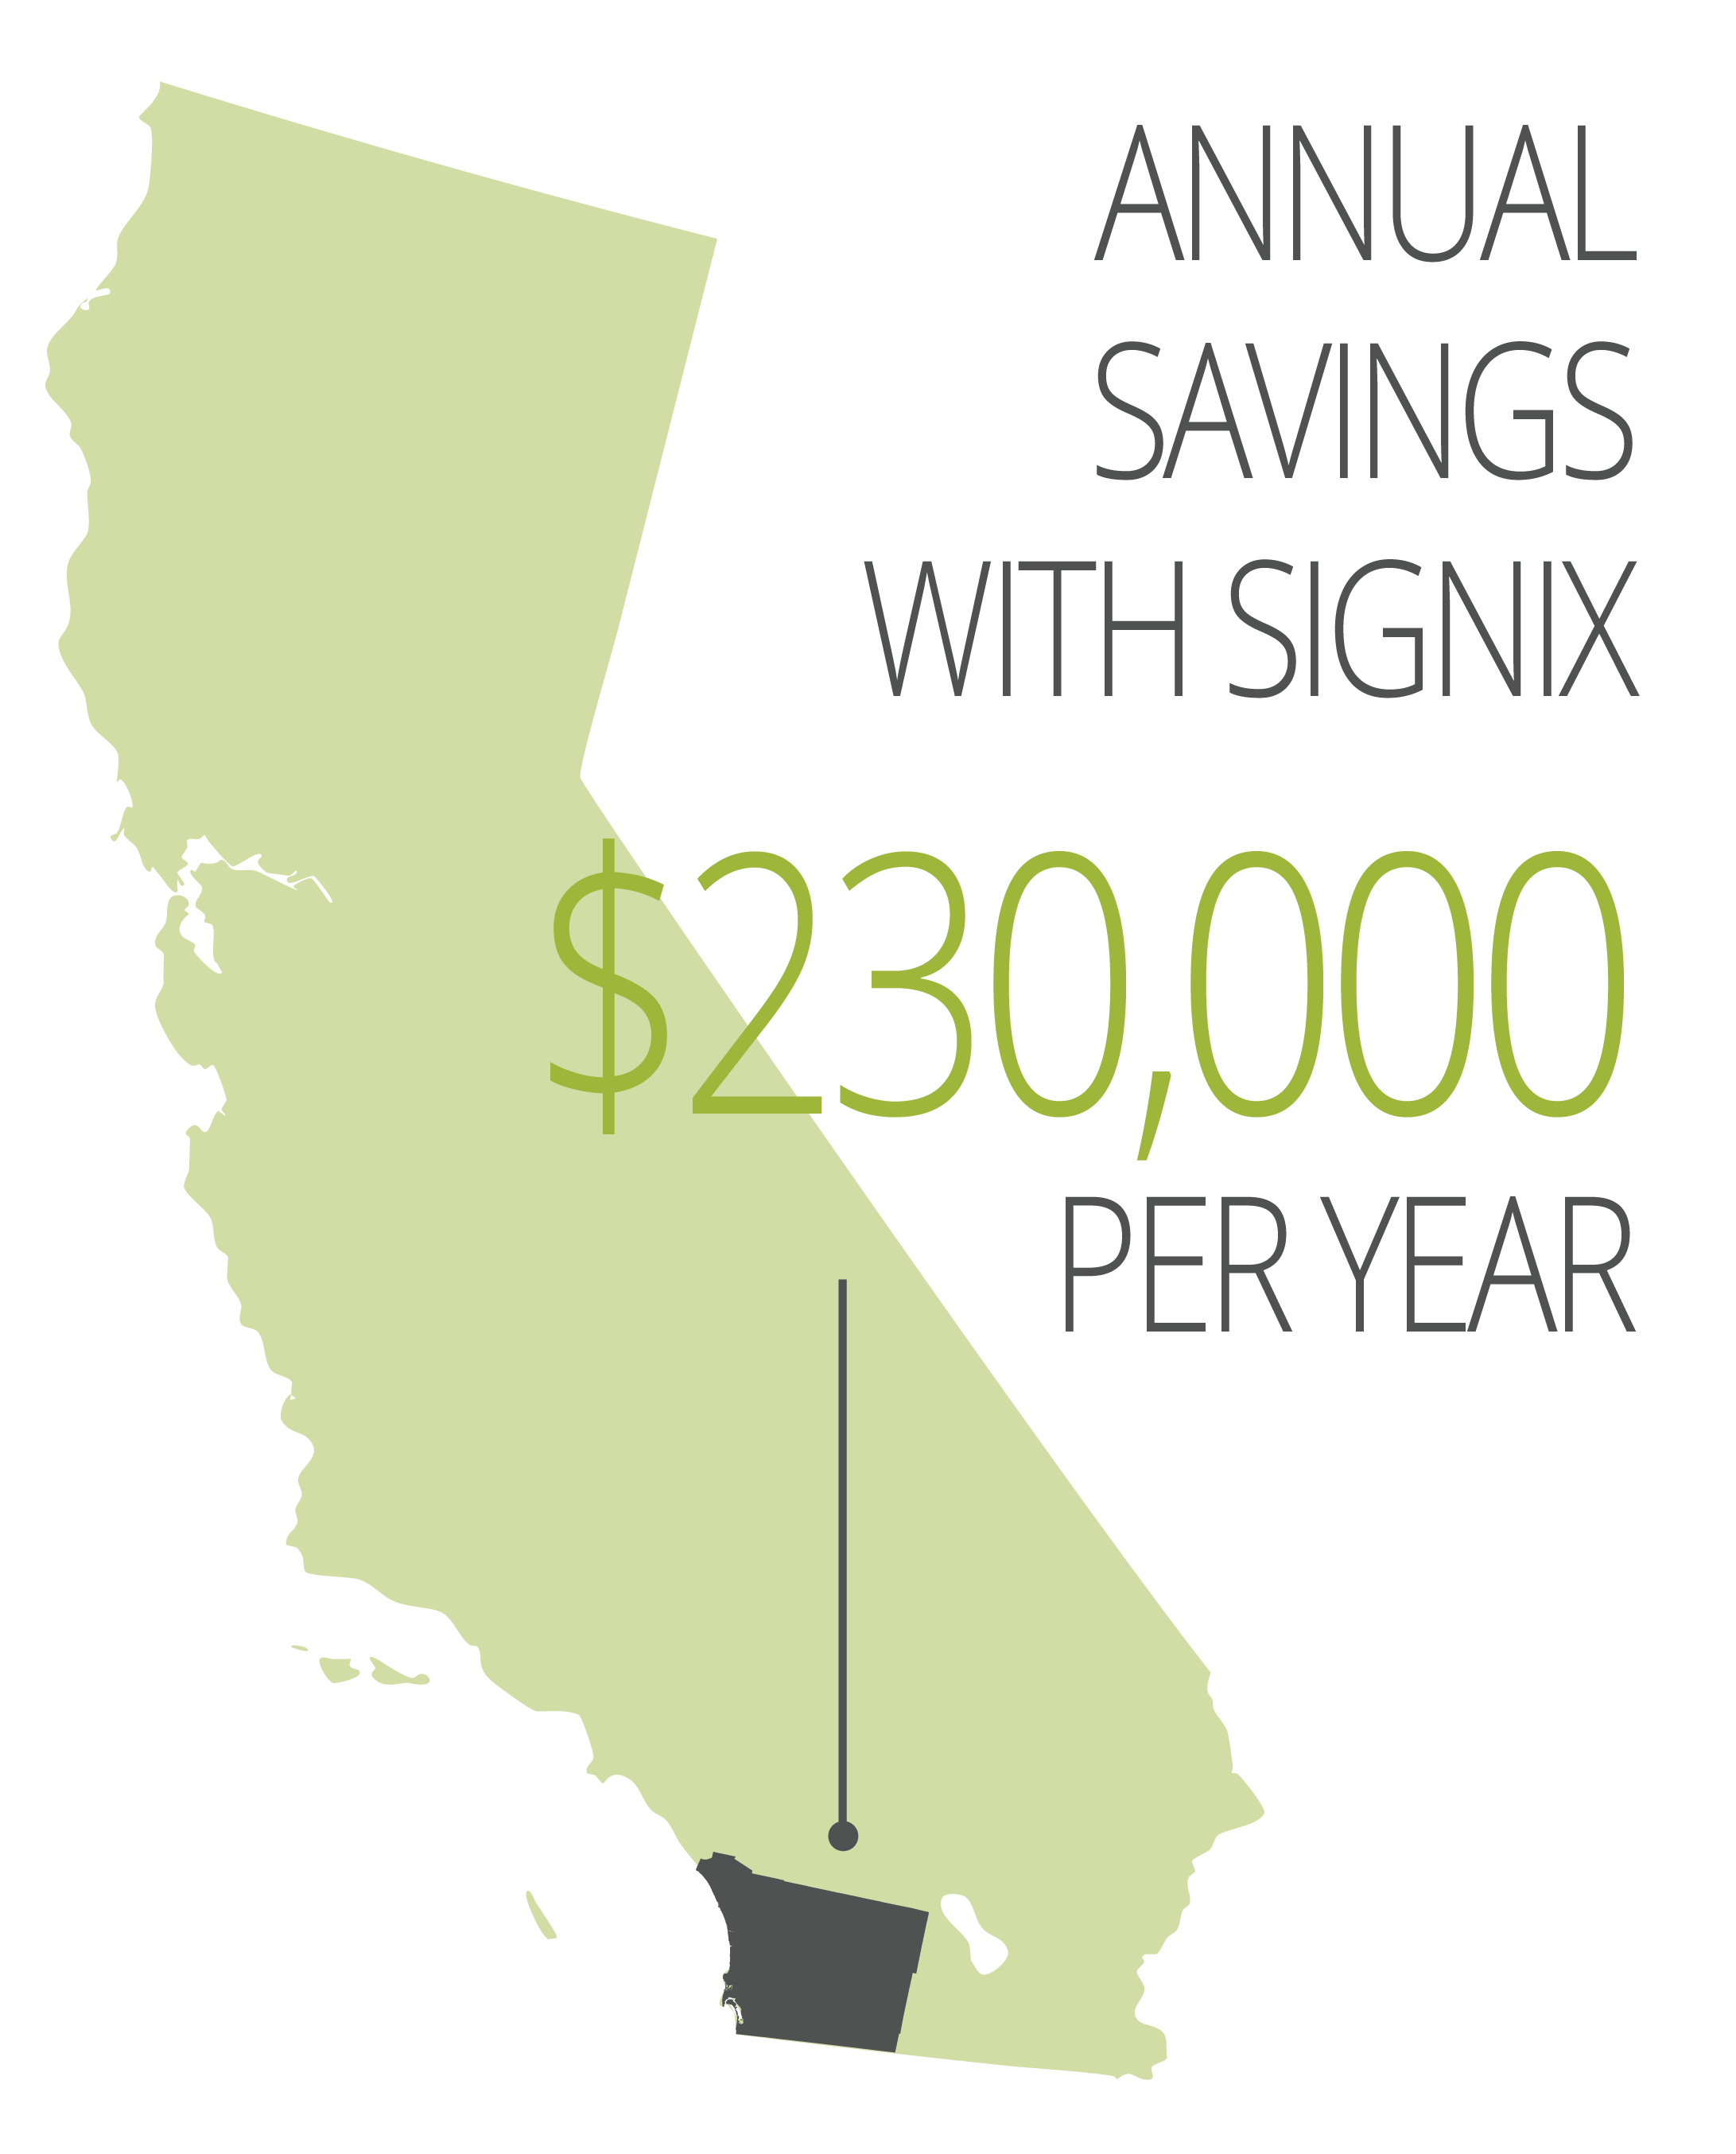 E-Signatures in Local Government: Saving $230,000 Per Year and Counting